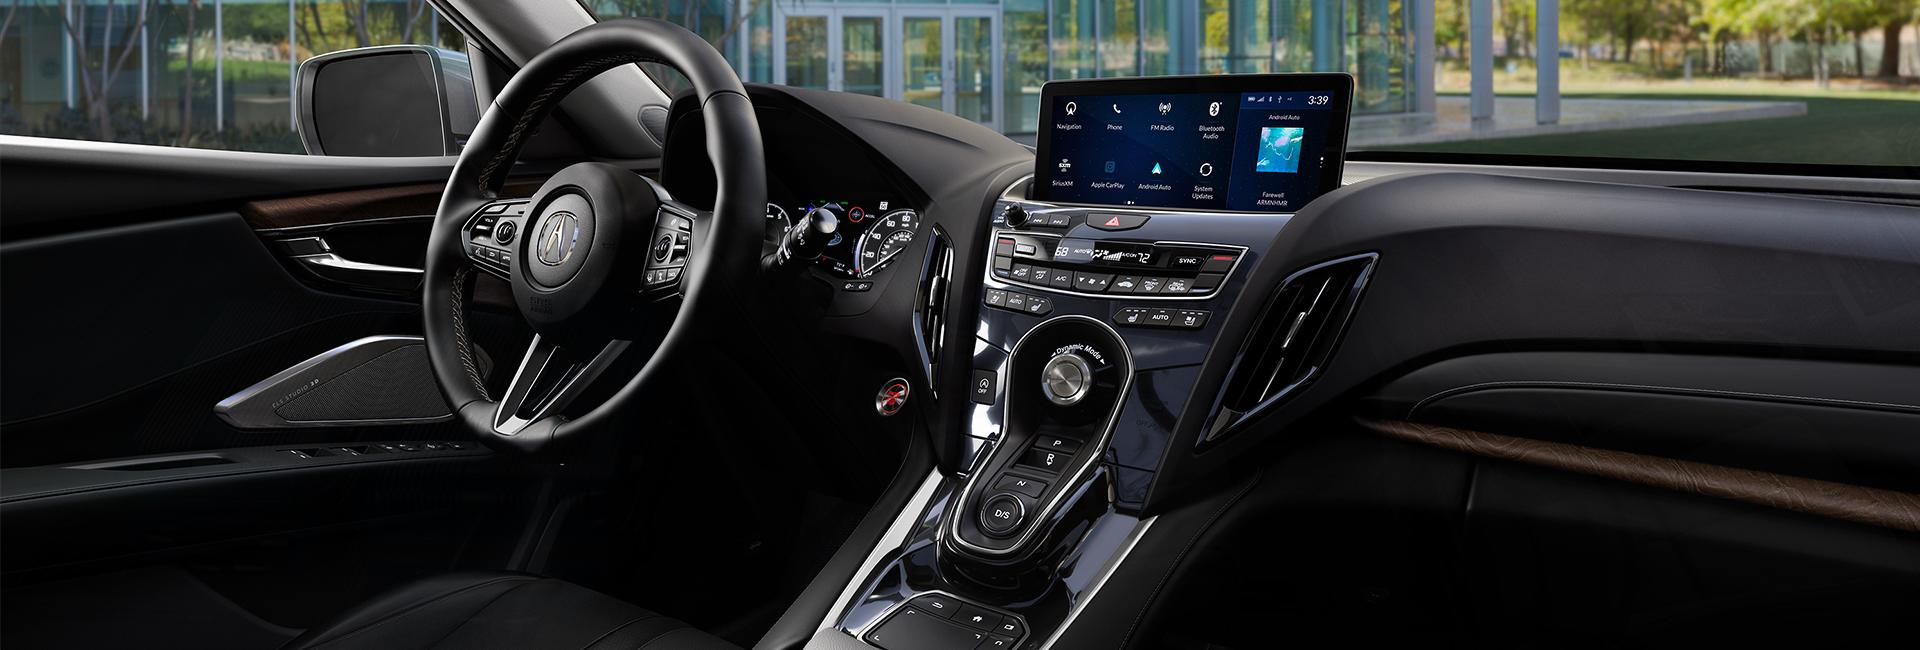 Picture of the interior of the 2020 Acura RDX for sale at Spitzer Acura